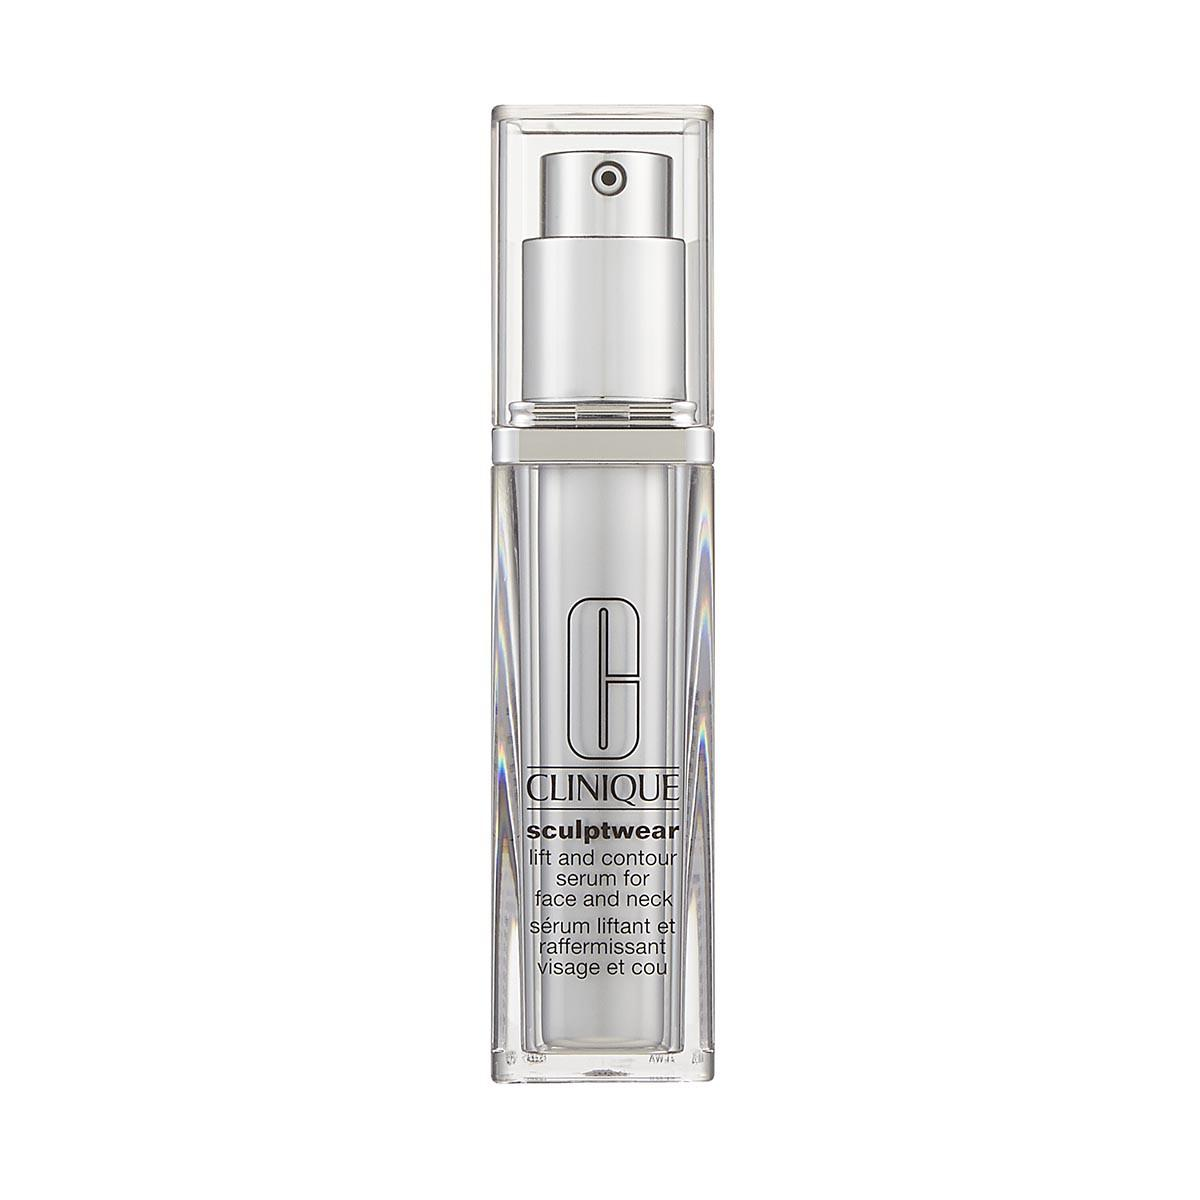 Clinique Sculptwear Lift And Contour Serum For Face And Neck All Skin Types 50 ml